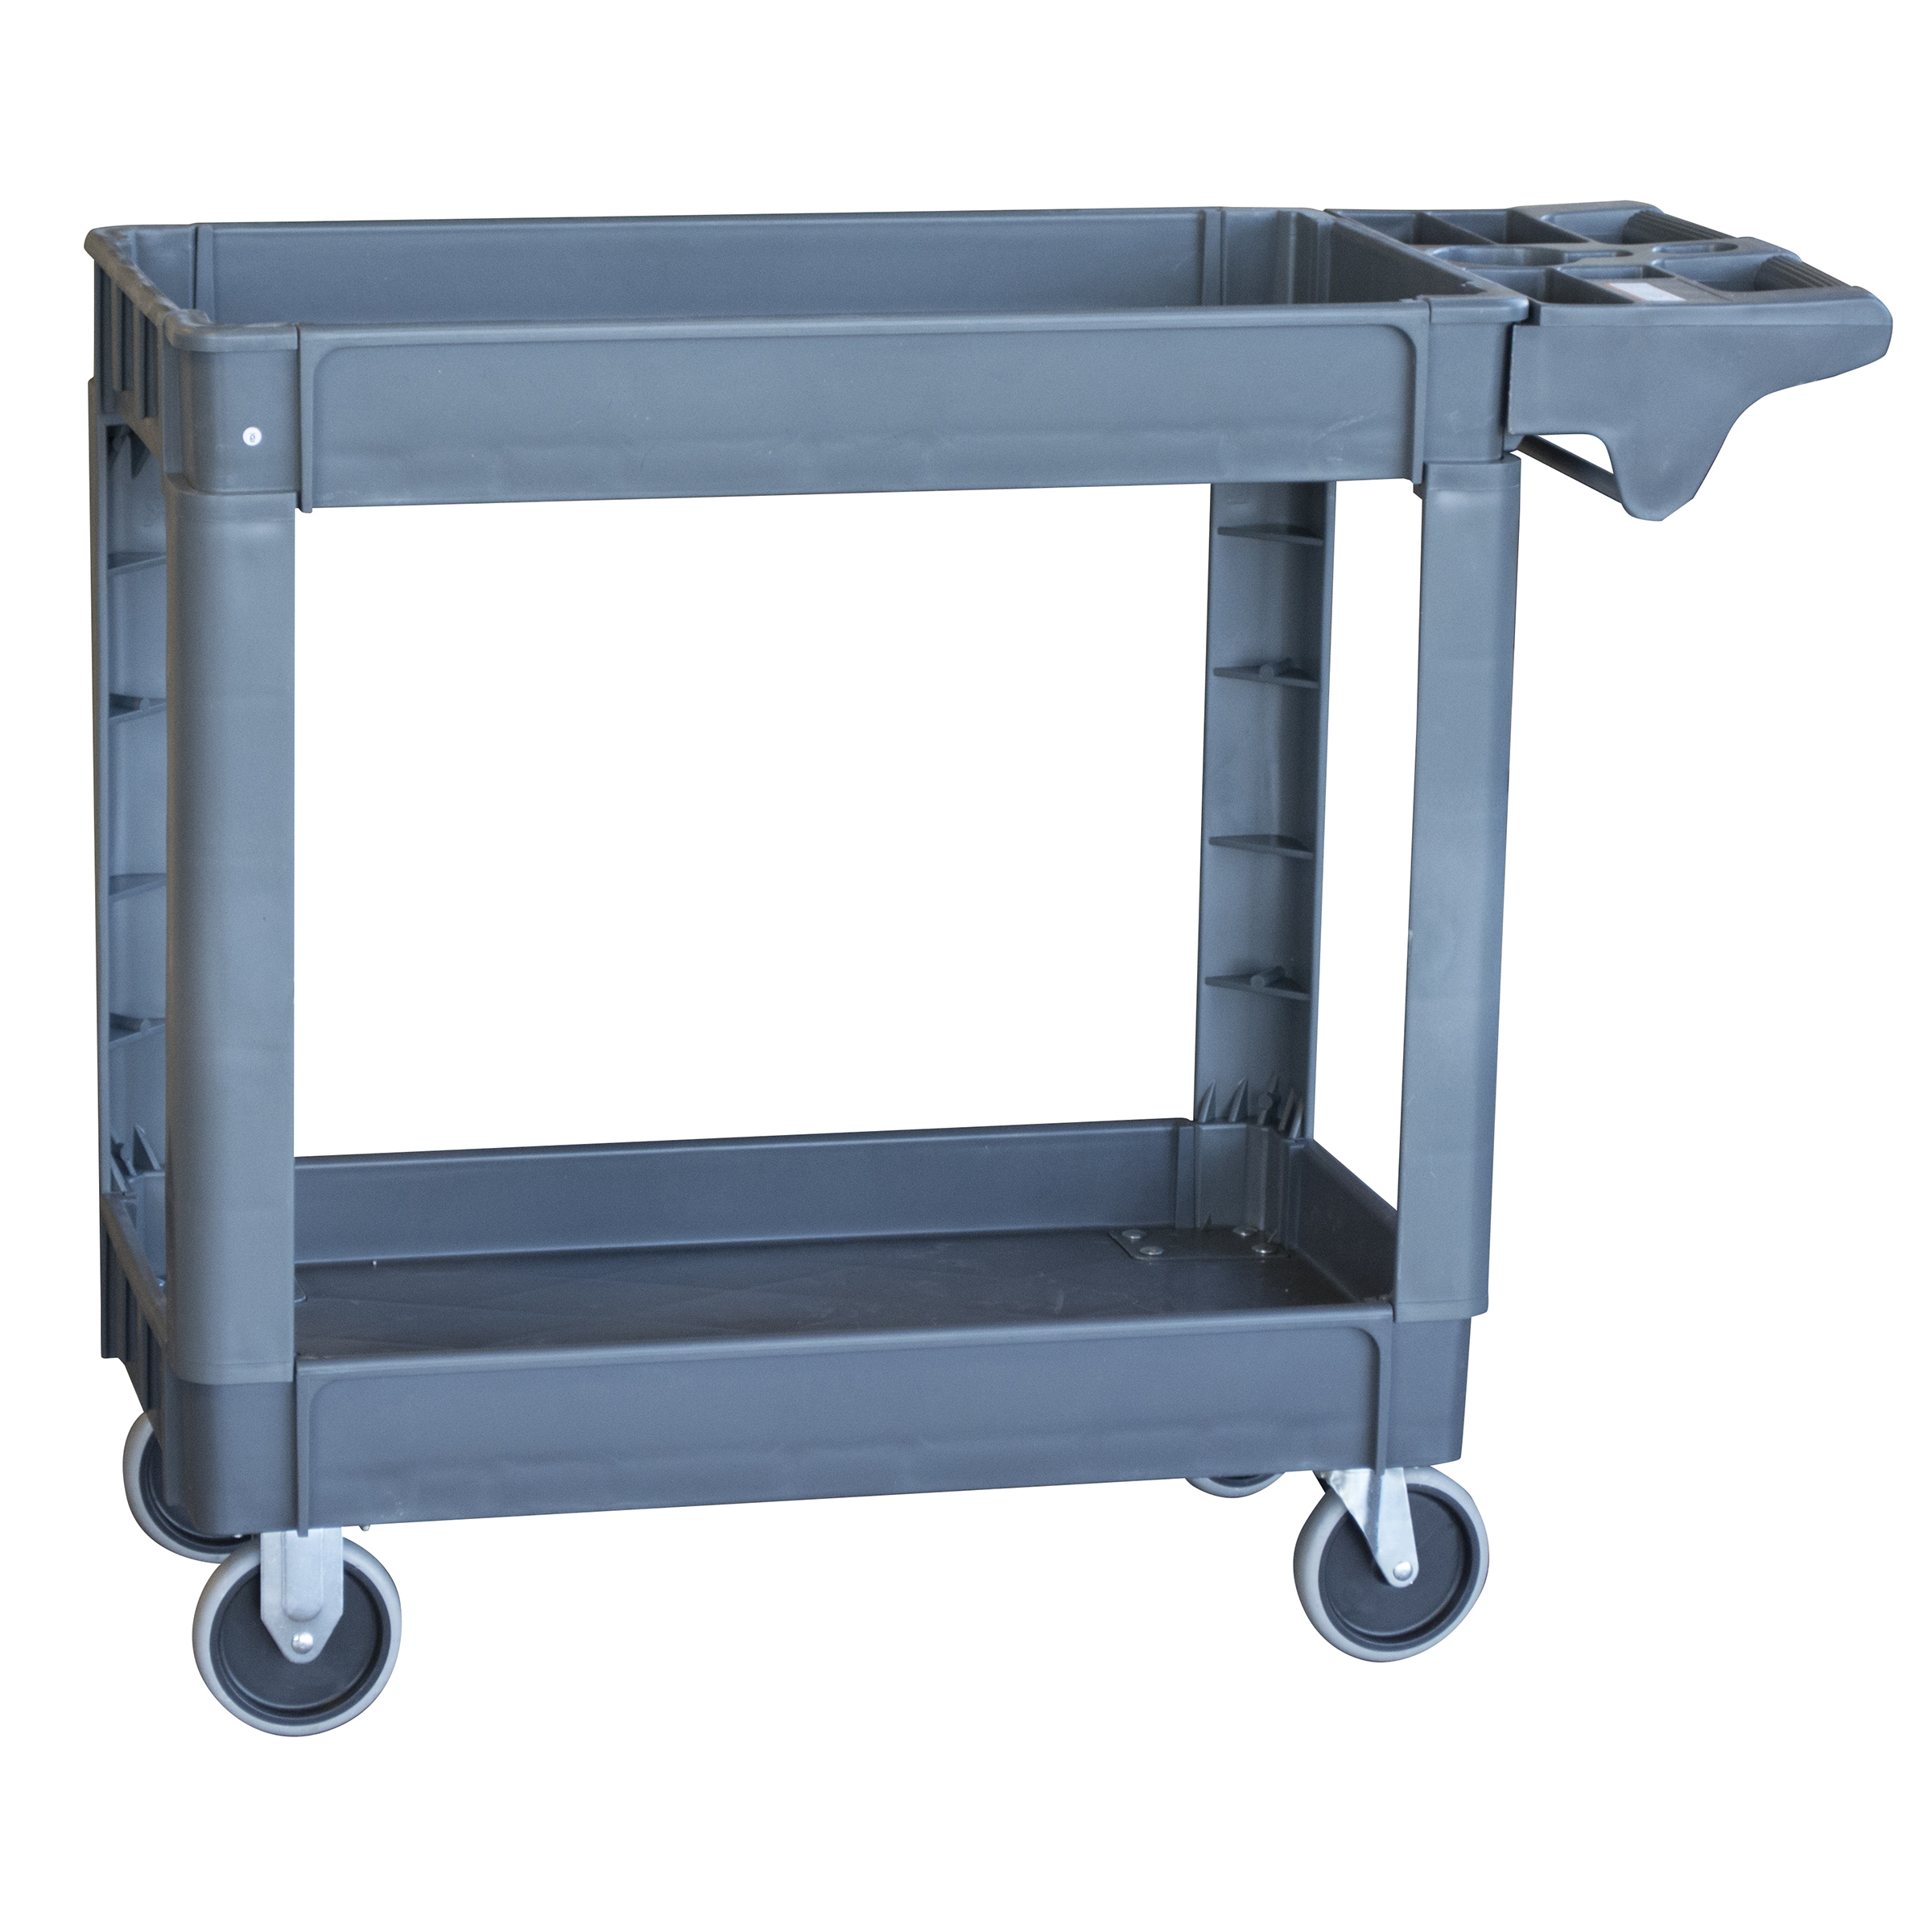 Pro-Series Two-Shelf Heavy Duty Utility Cart, 550 Lbs. Capacity